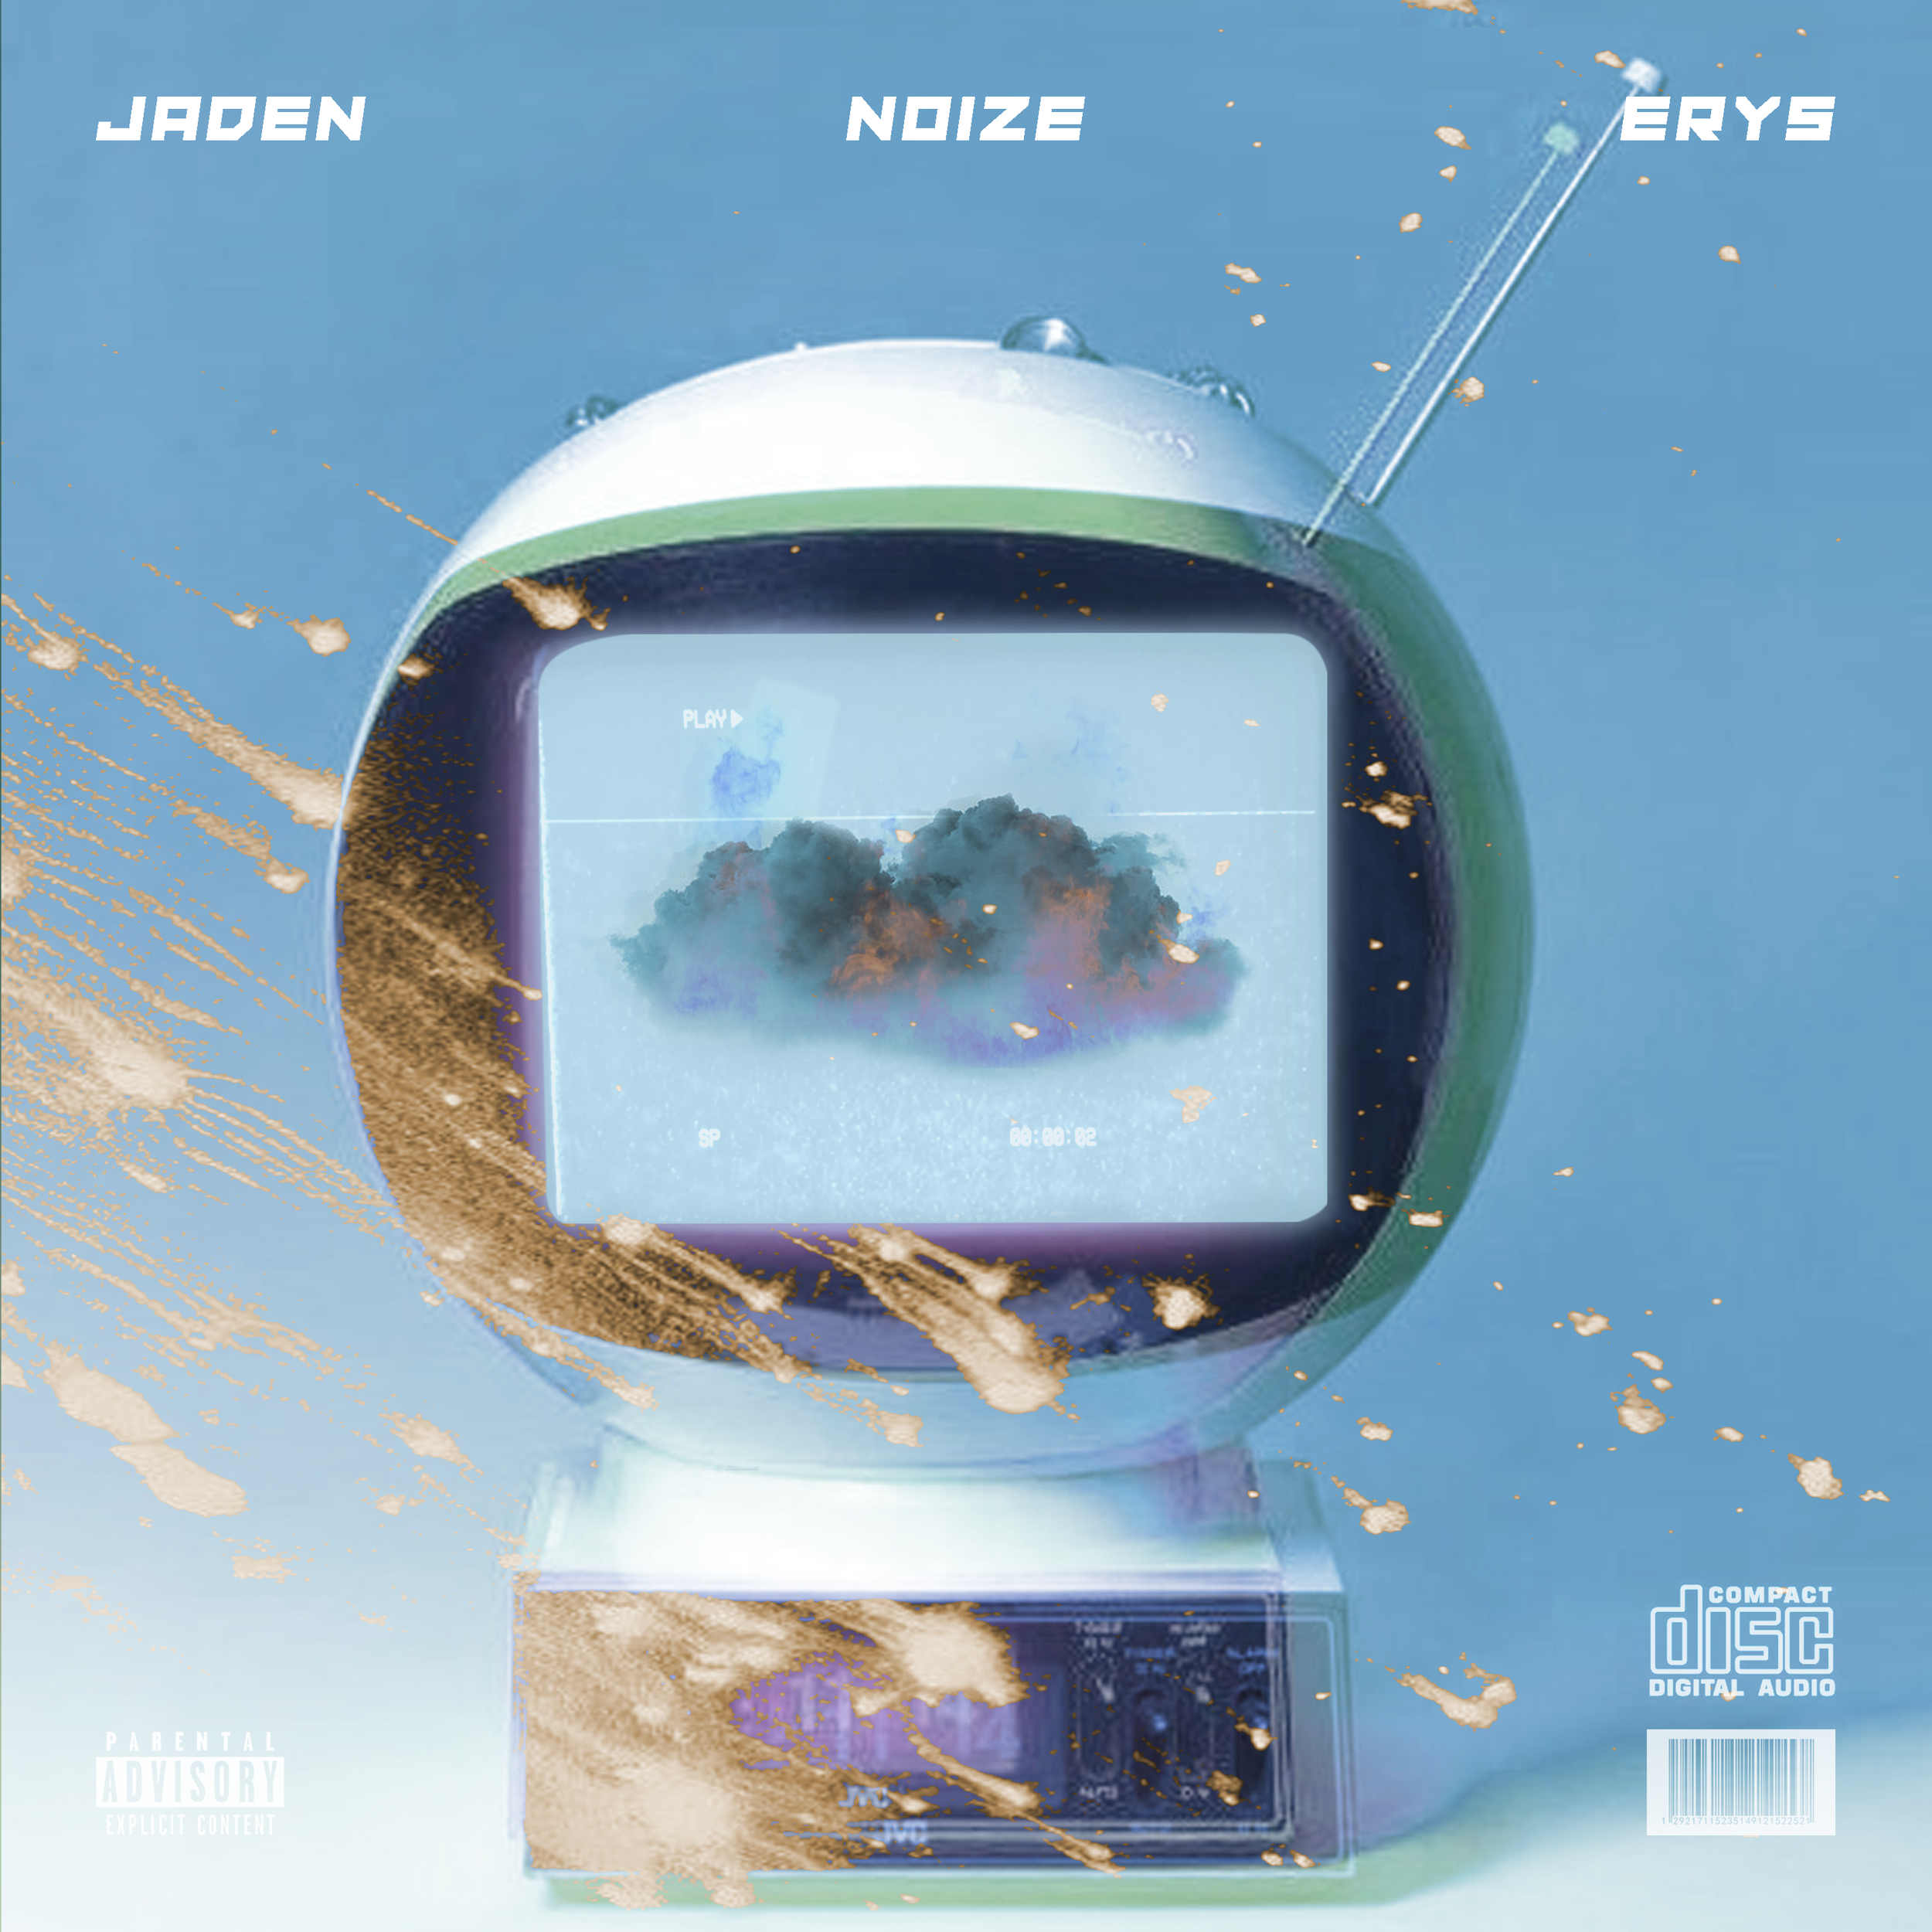 NOIZE_COVER.png